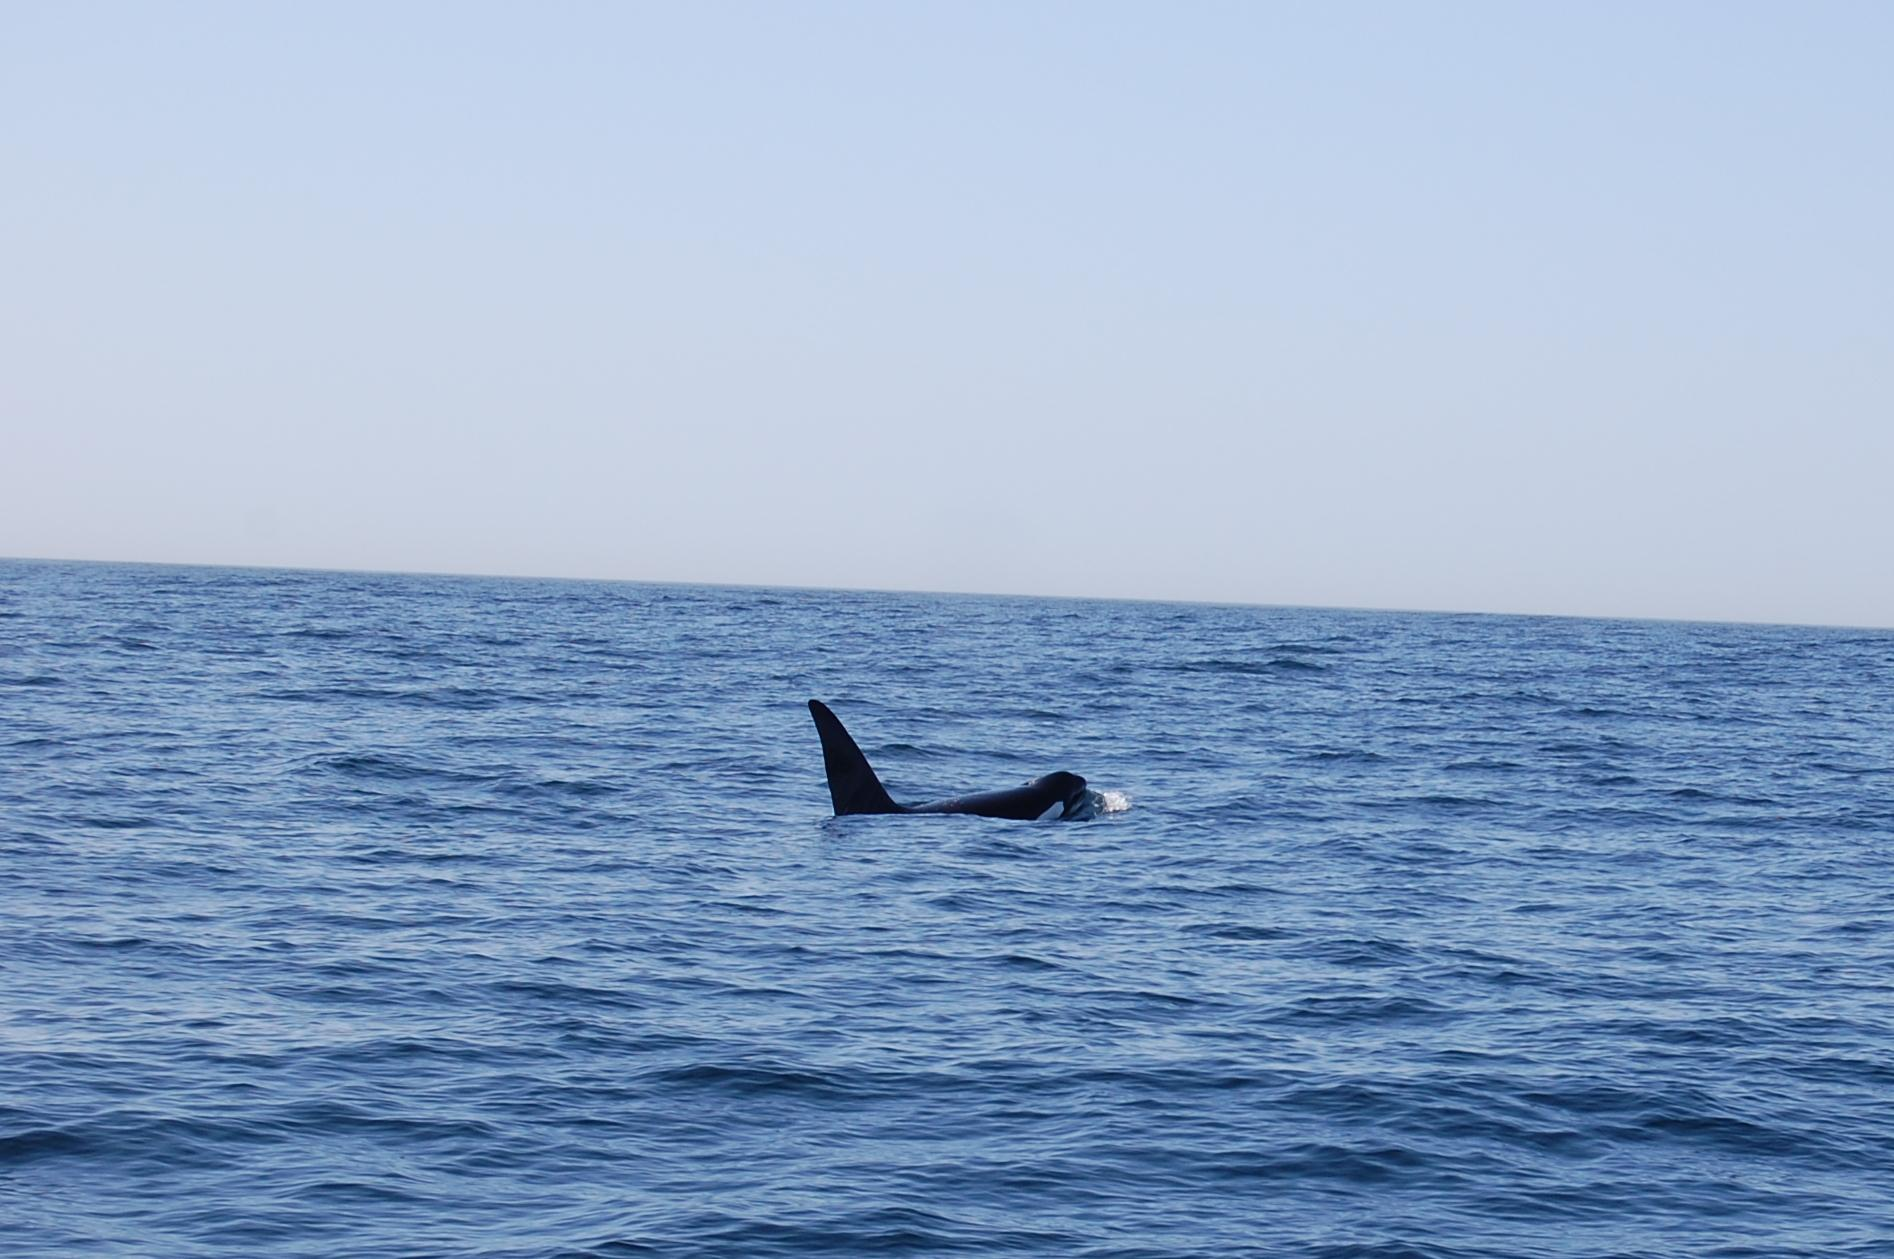 Reasons to visit Monterey - Monterey Bay Whale Watch